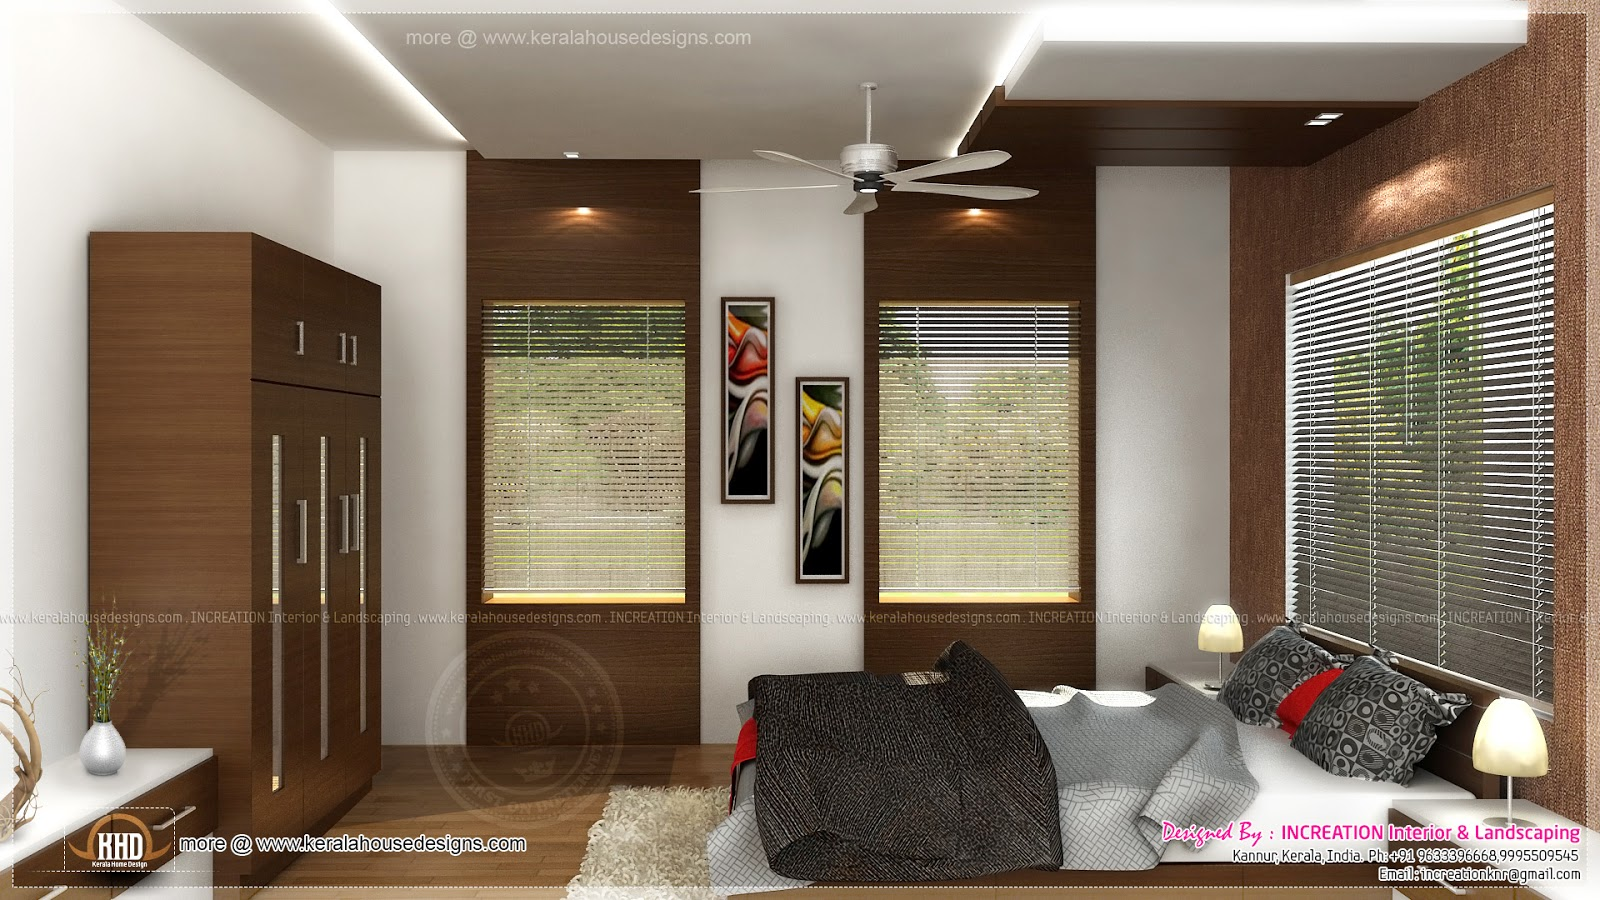 Interior designs from kannur kerala home kerala plans for Interior designs home